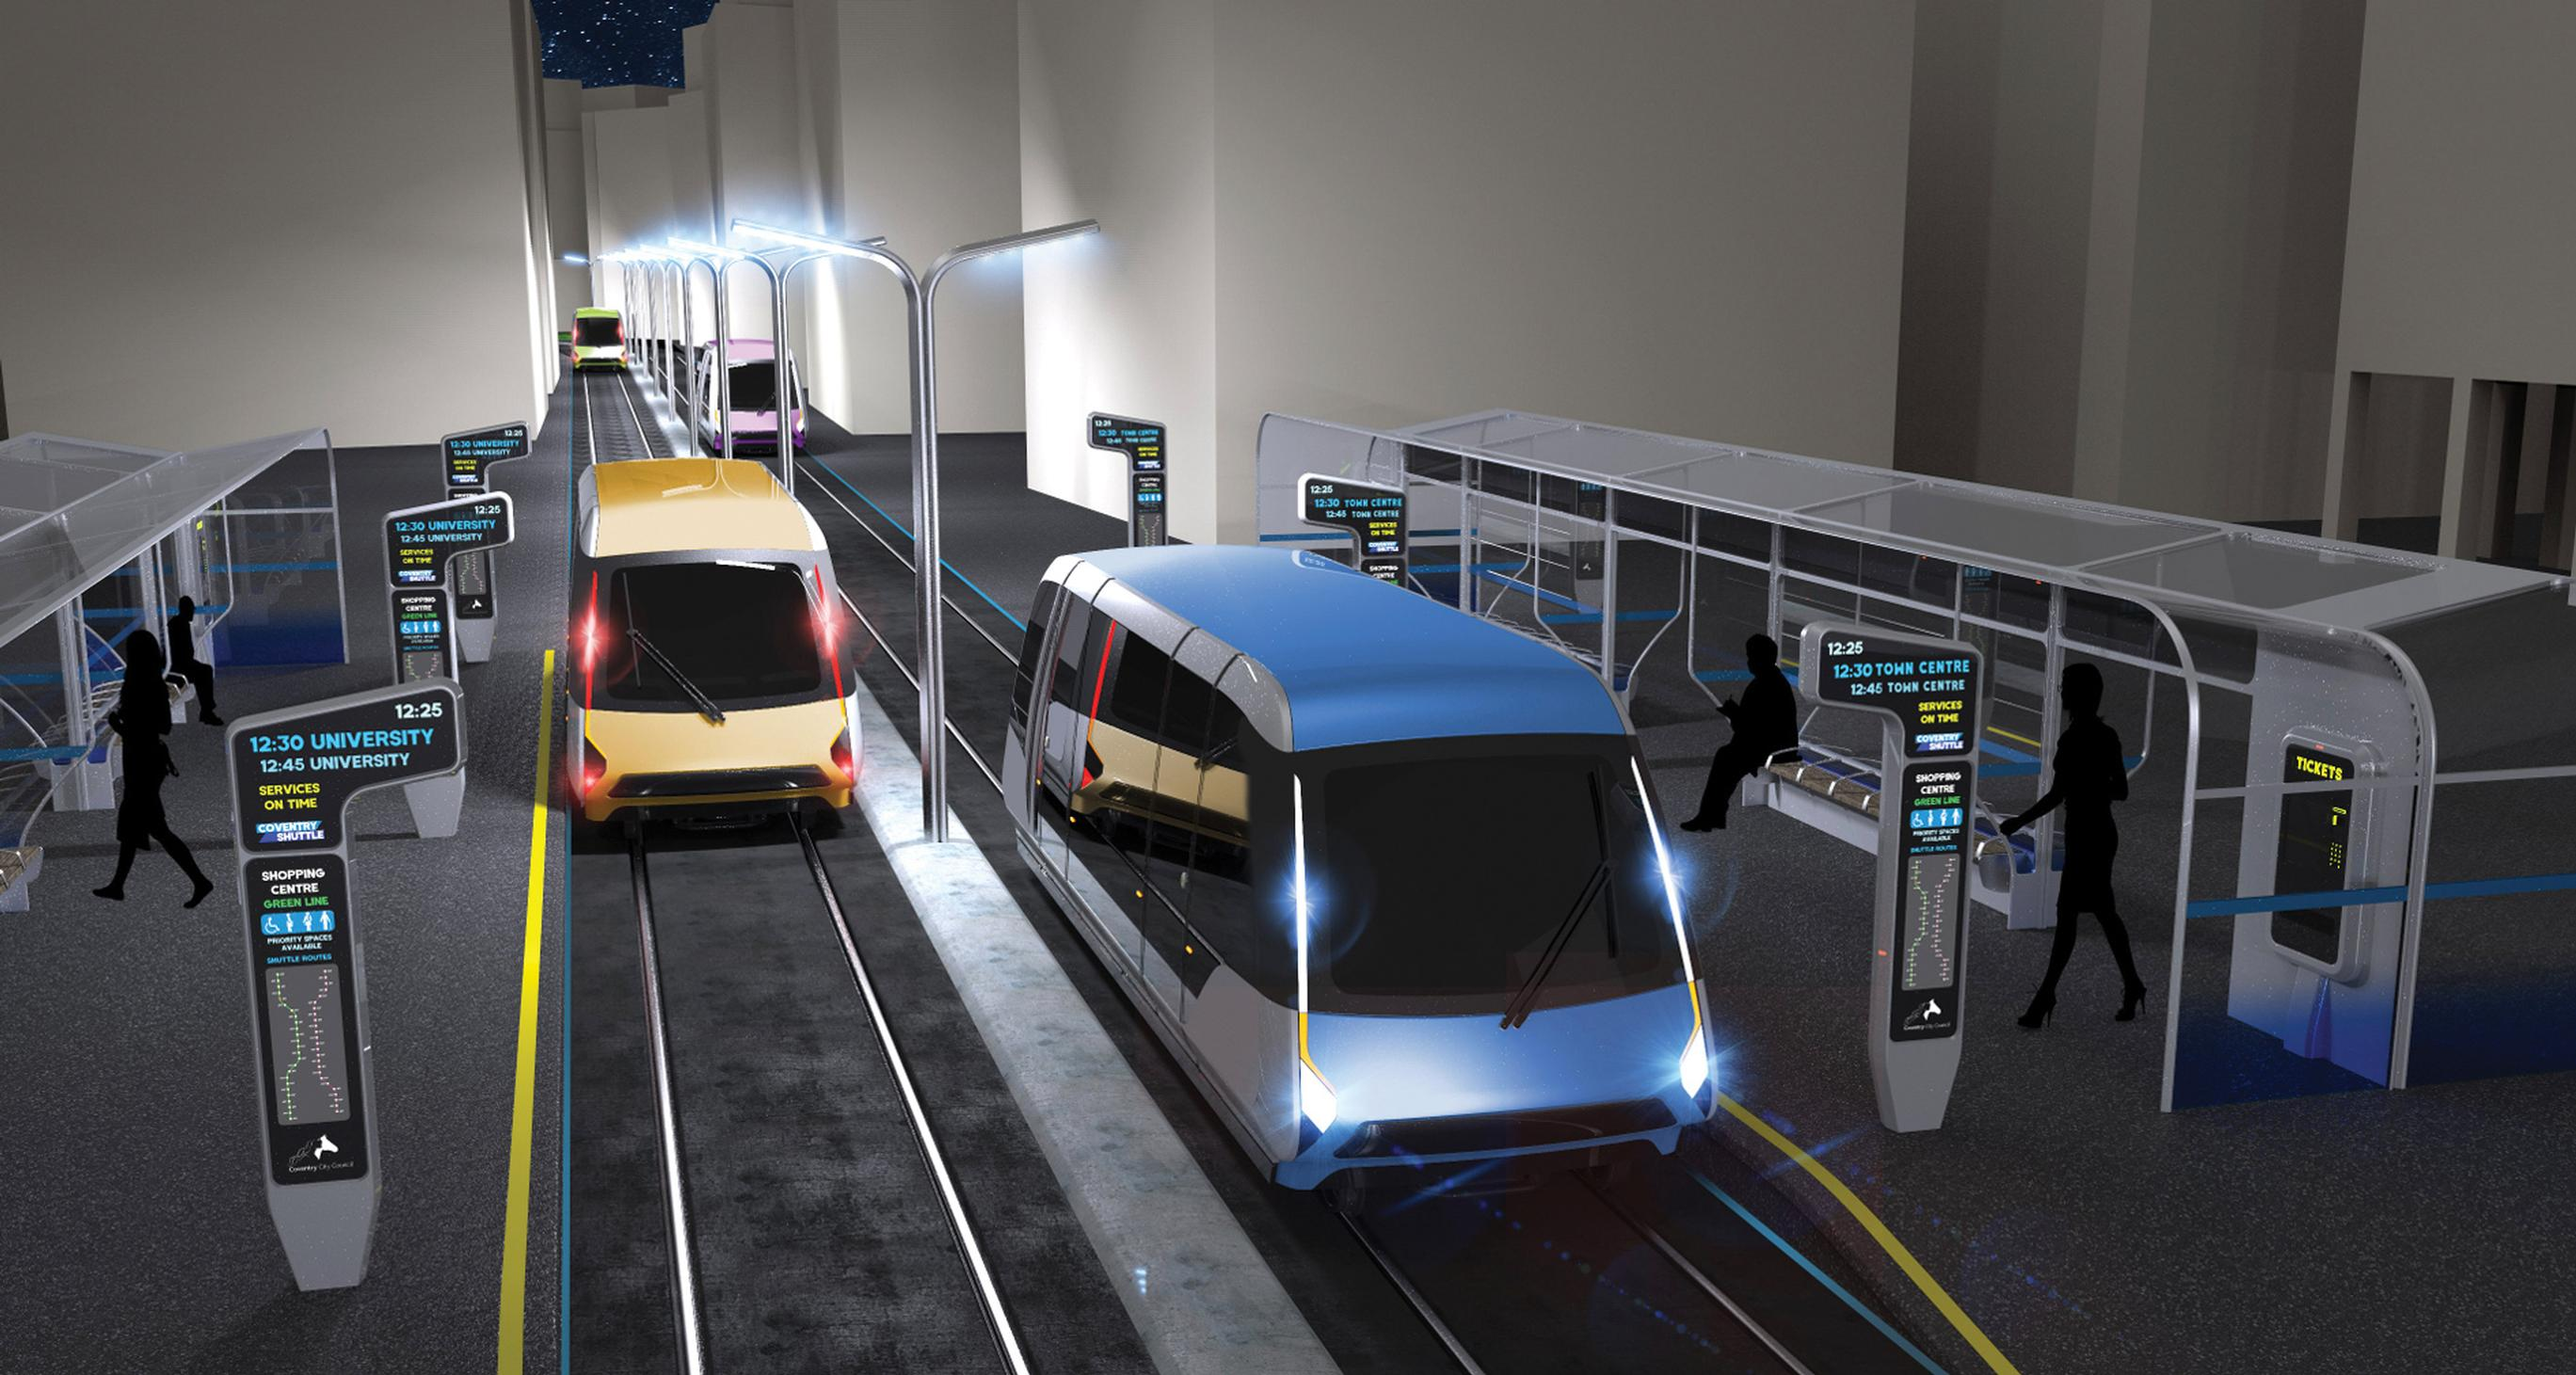 Coventry considers proposal for £6m very light rail project